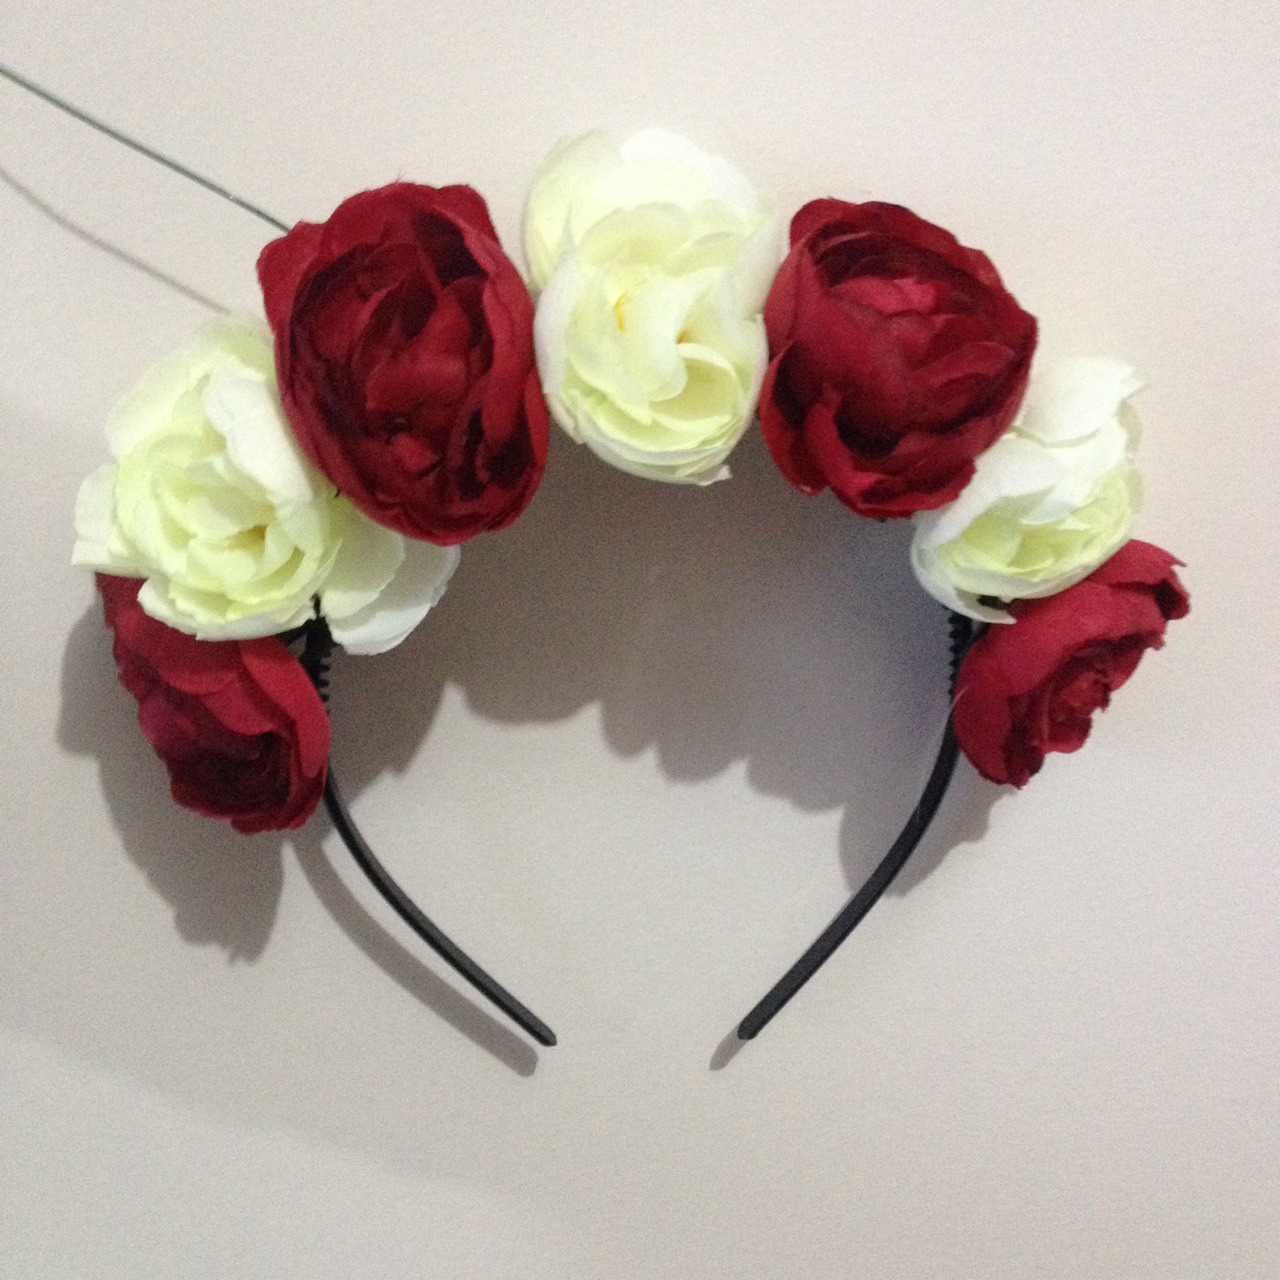 Creamwhite And Red Rose Flower Crown Rixie Online Store Powered